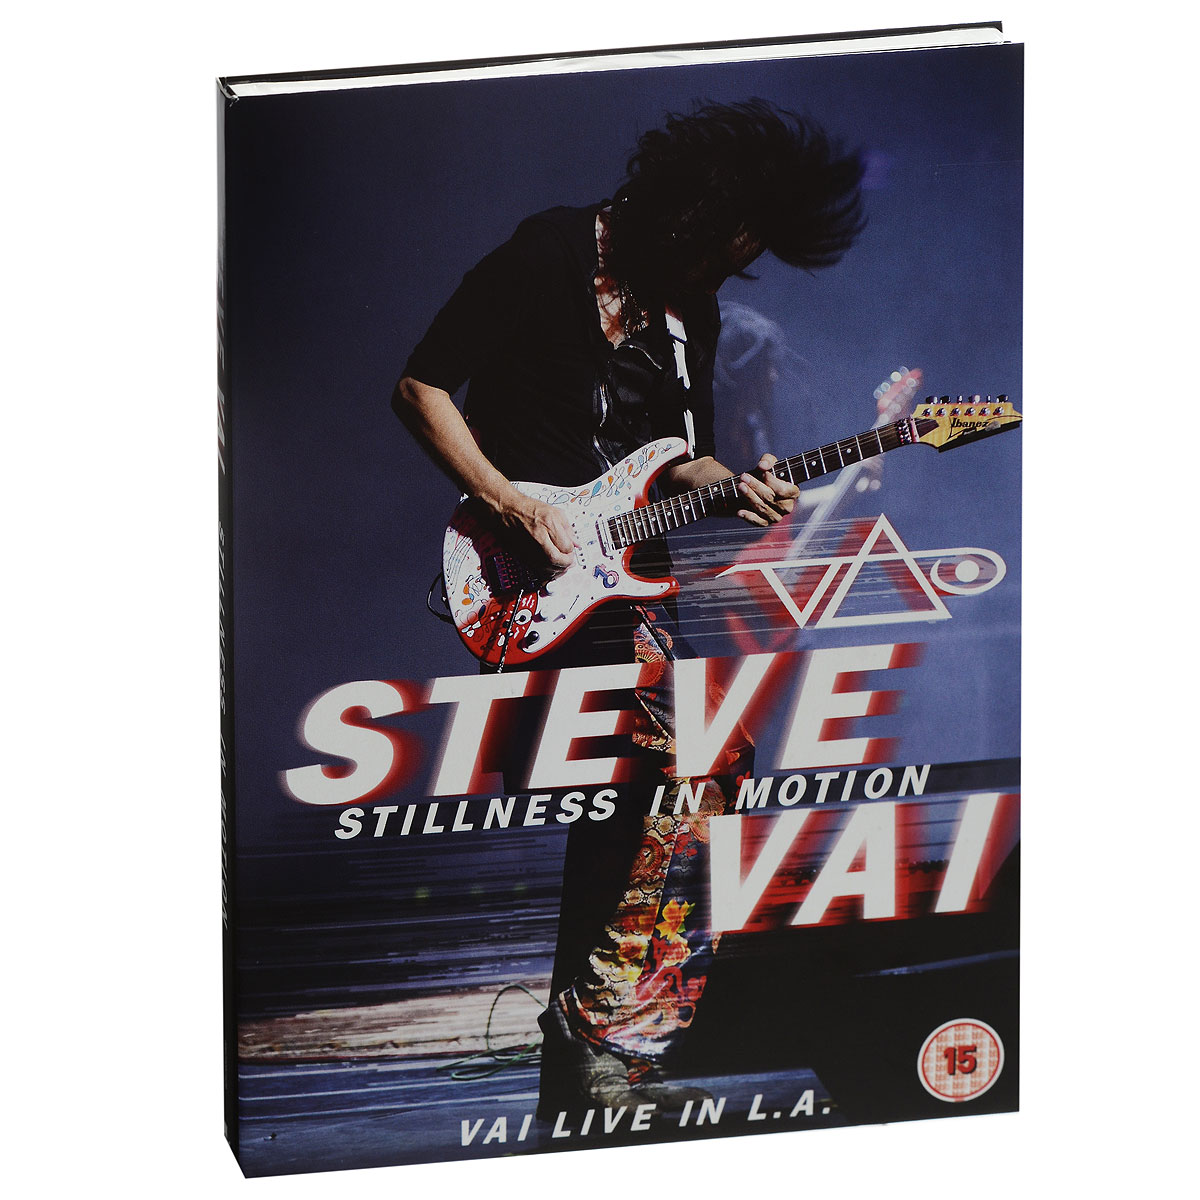 Steve Vai. Stillness In Motion. Vai Live In L.A. (2 DVD) ikon 2016 ikoncert showtime tour in seoul live release date 2016 05 04 kpop